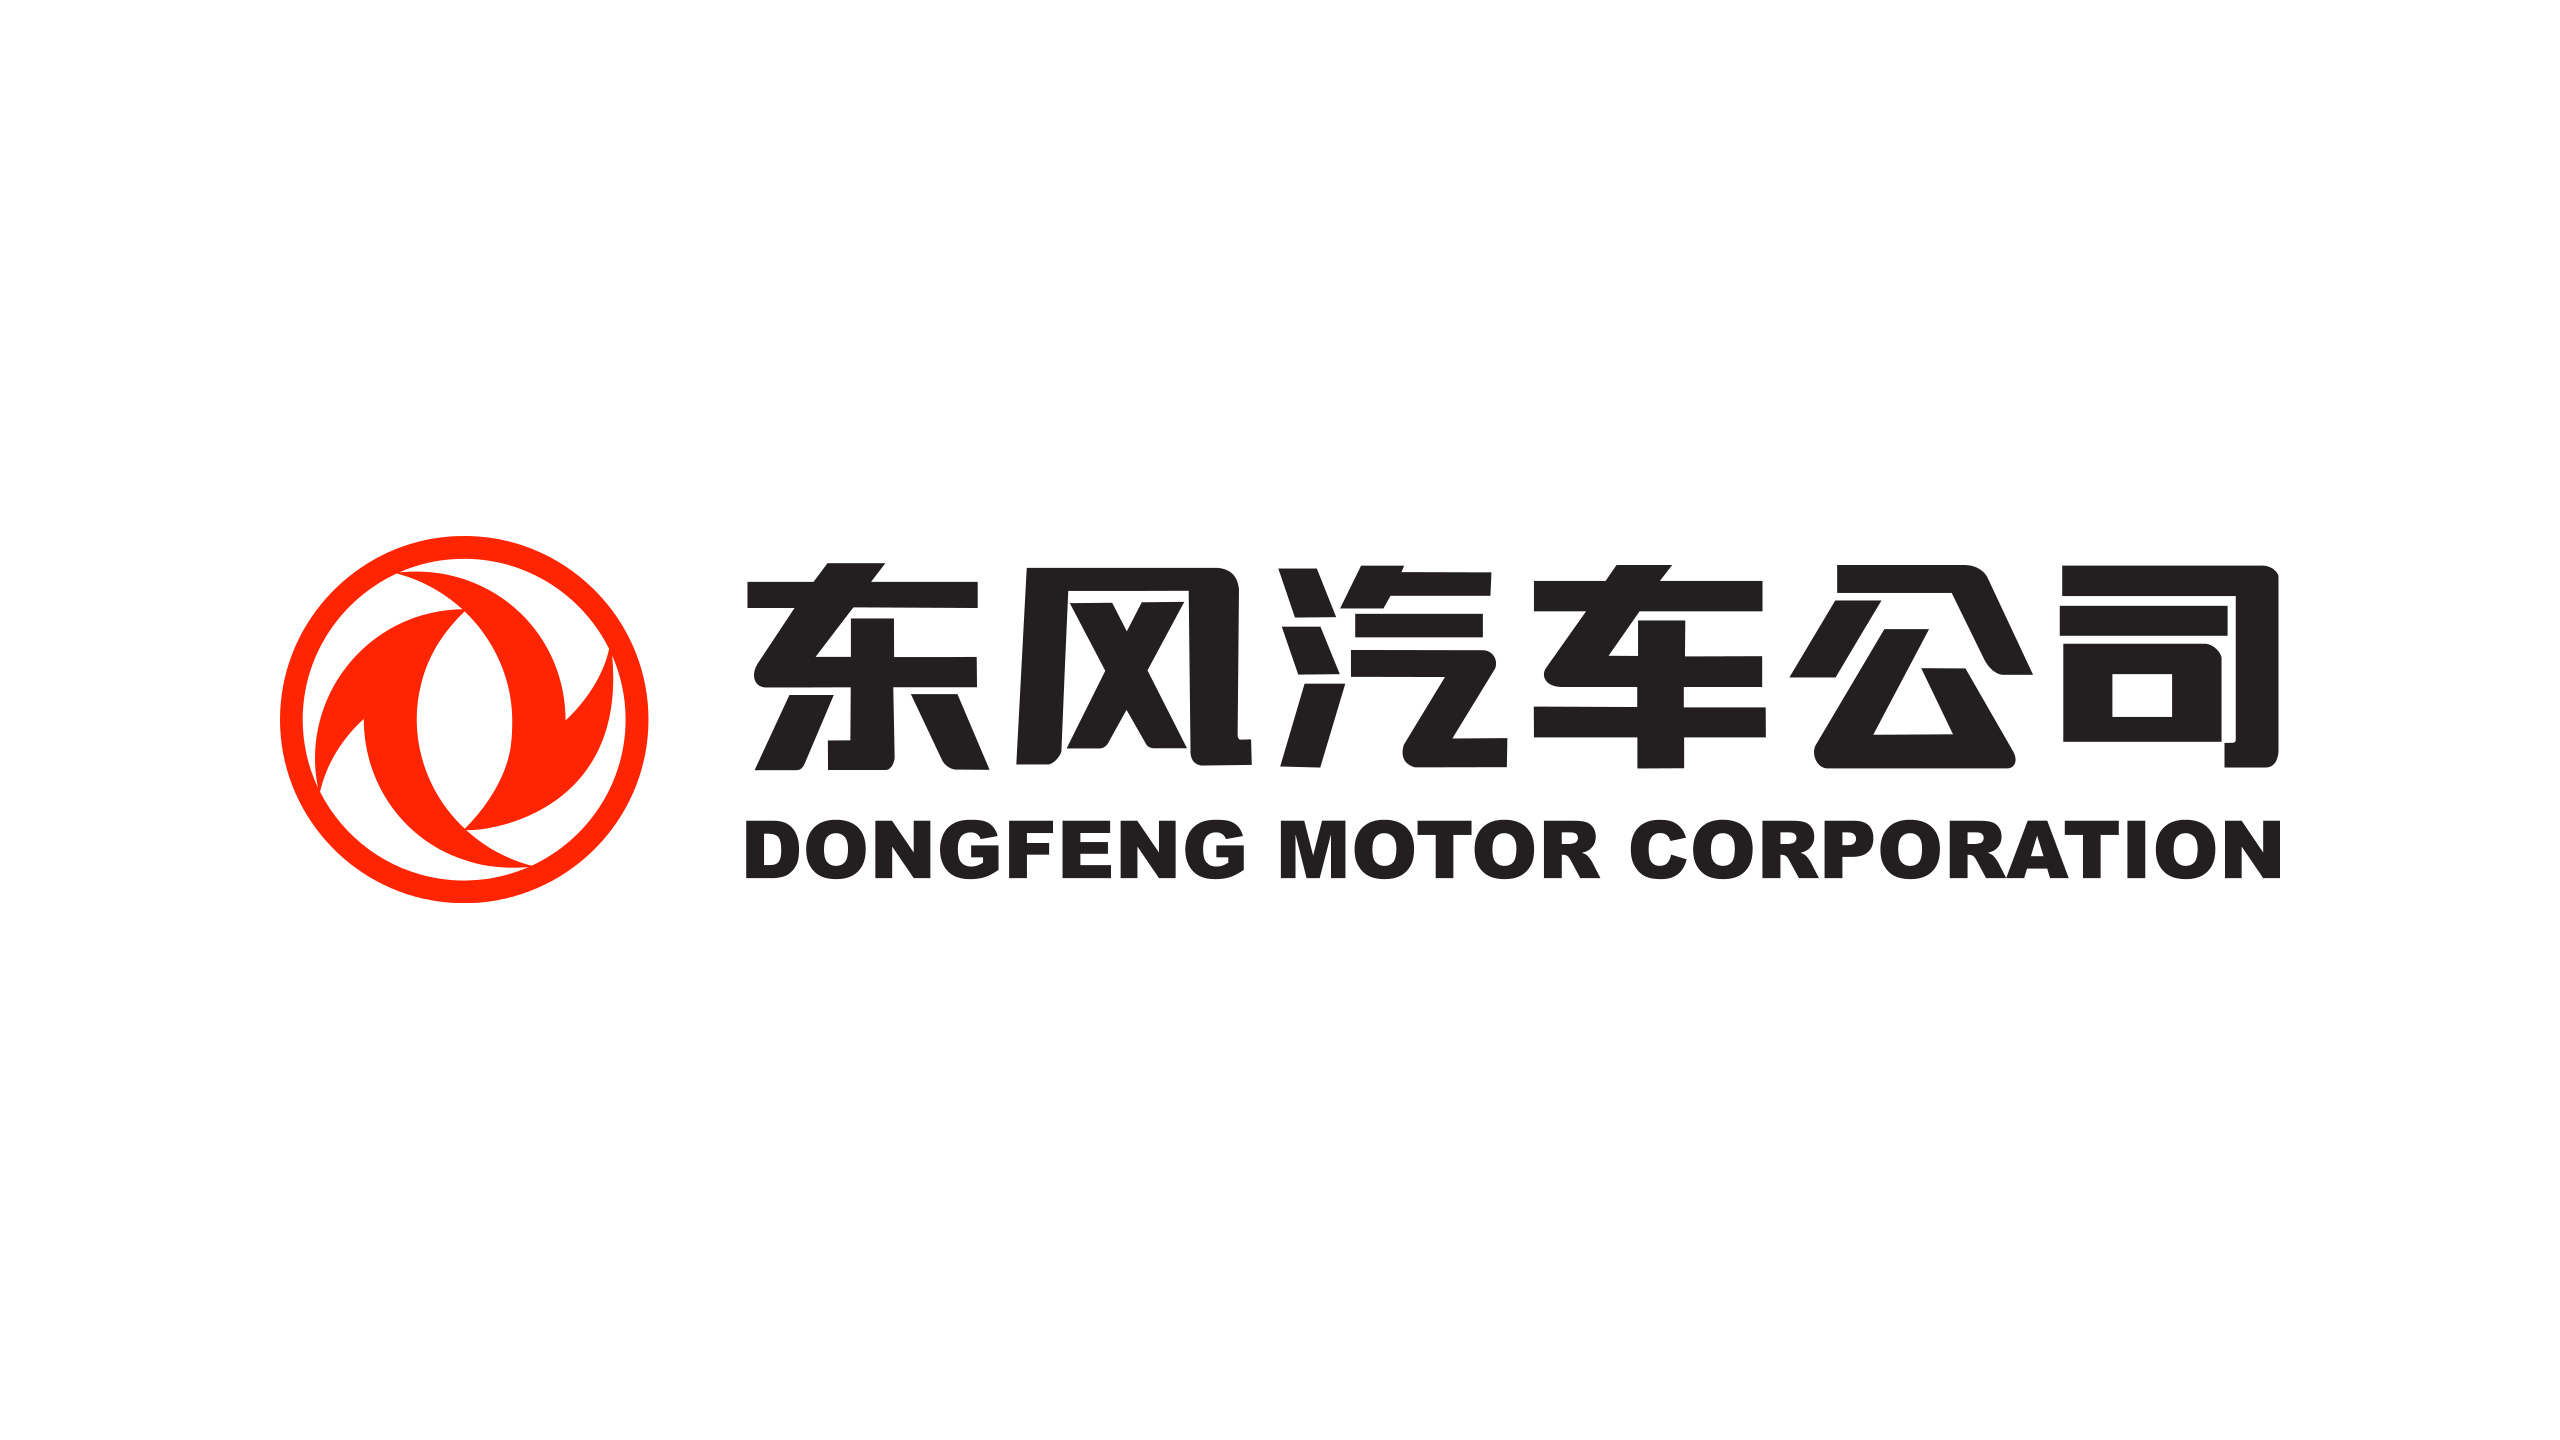 Dongfeng Logo (Present) 2560x1440 HD png - Dongfeng PNG